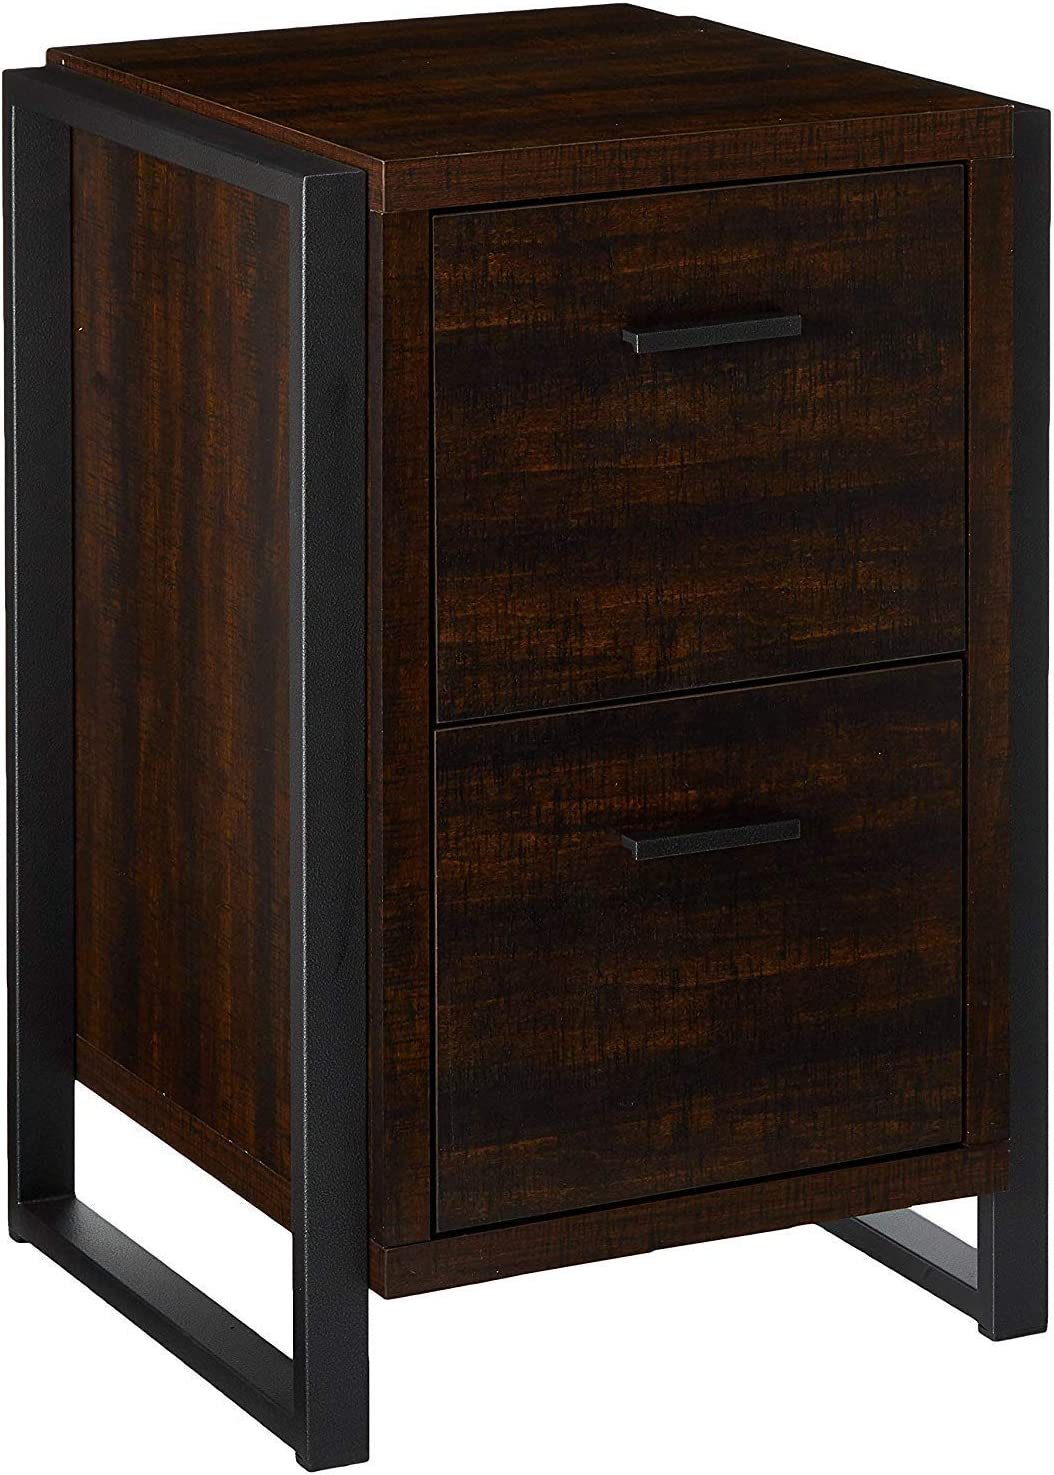 Offex Home Office 2 Drawer Vertical File Storage Cabinet Dark Chocolate 19.7W x 19.7D x 30H YD-OF-5134